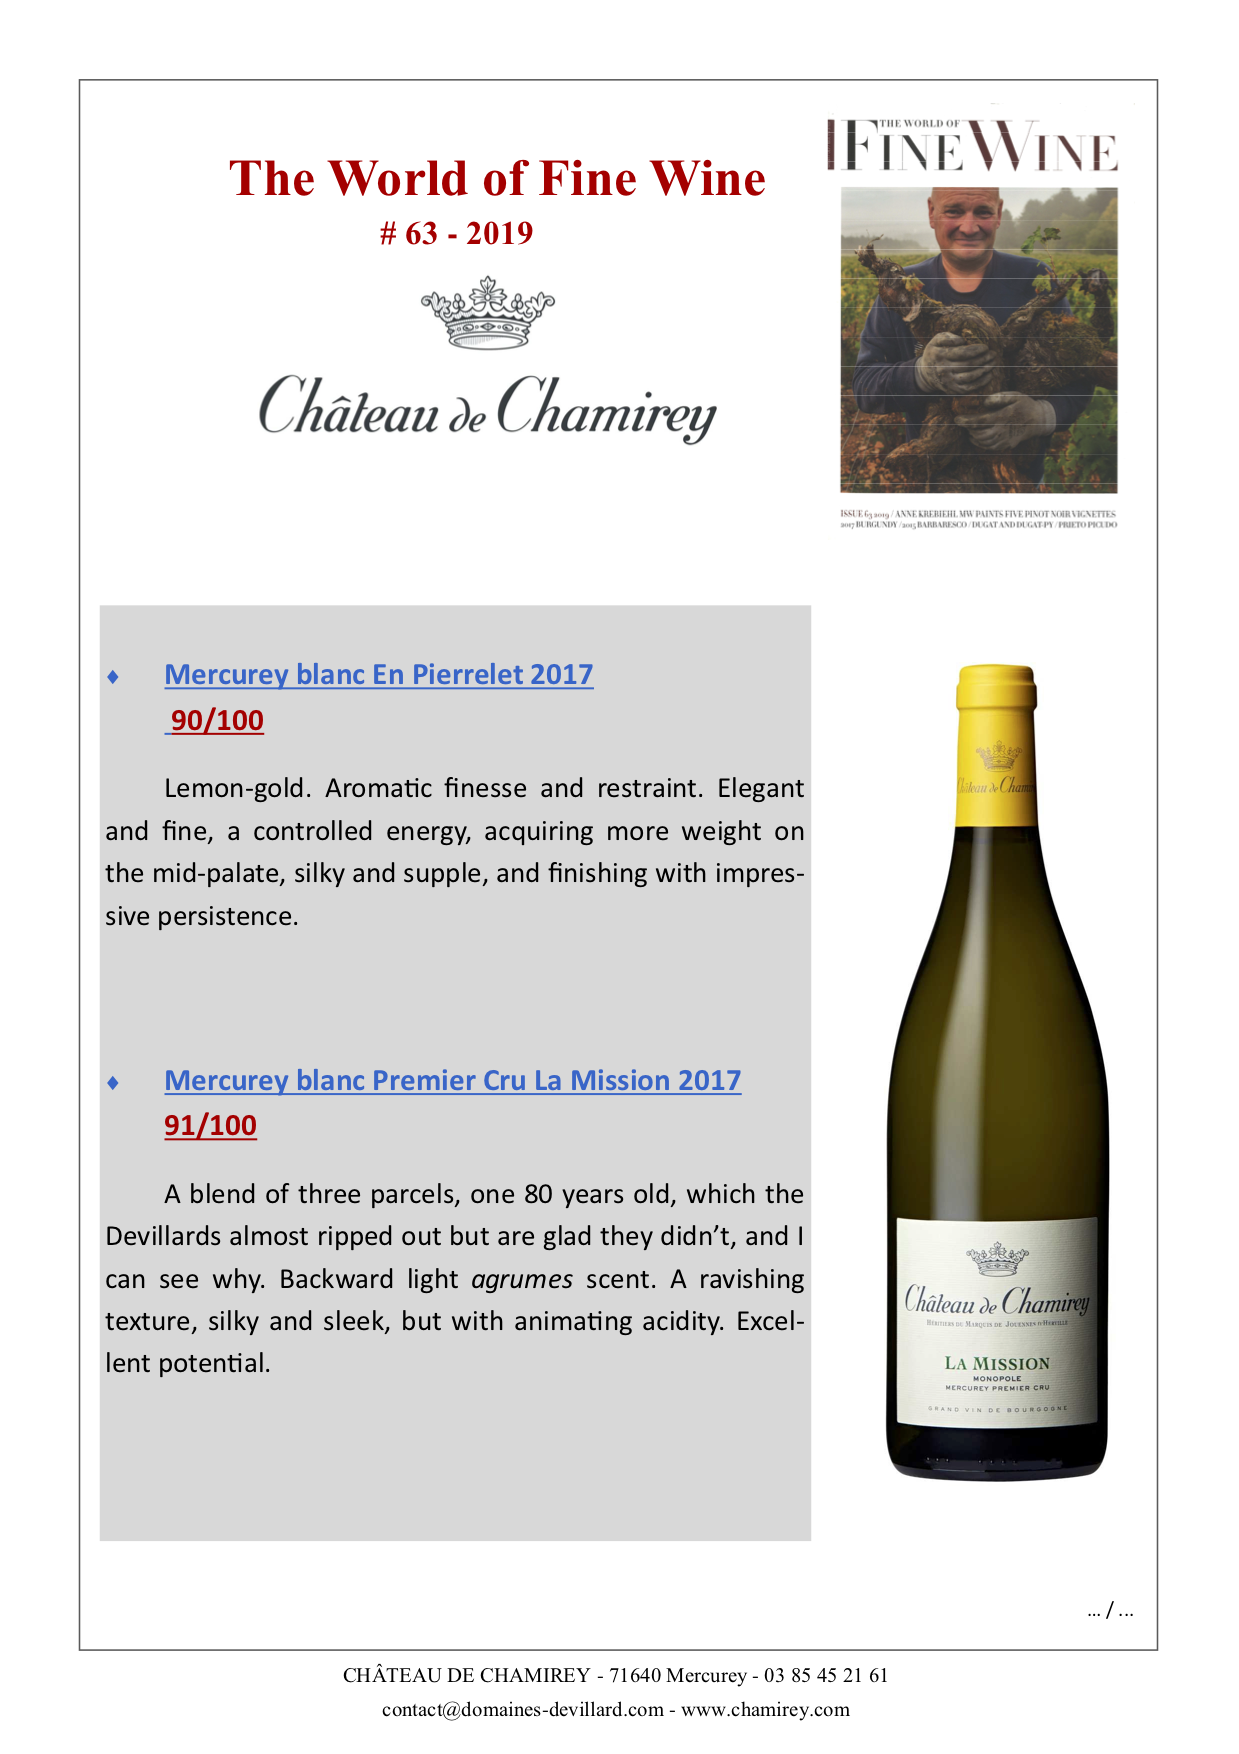 The World of Fine Wines_Chamirey 2017.png